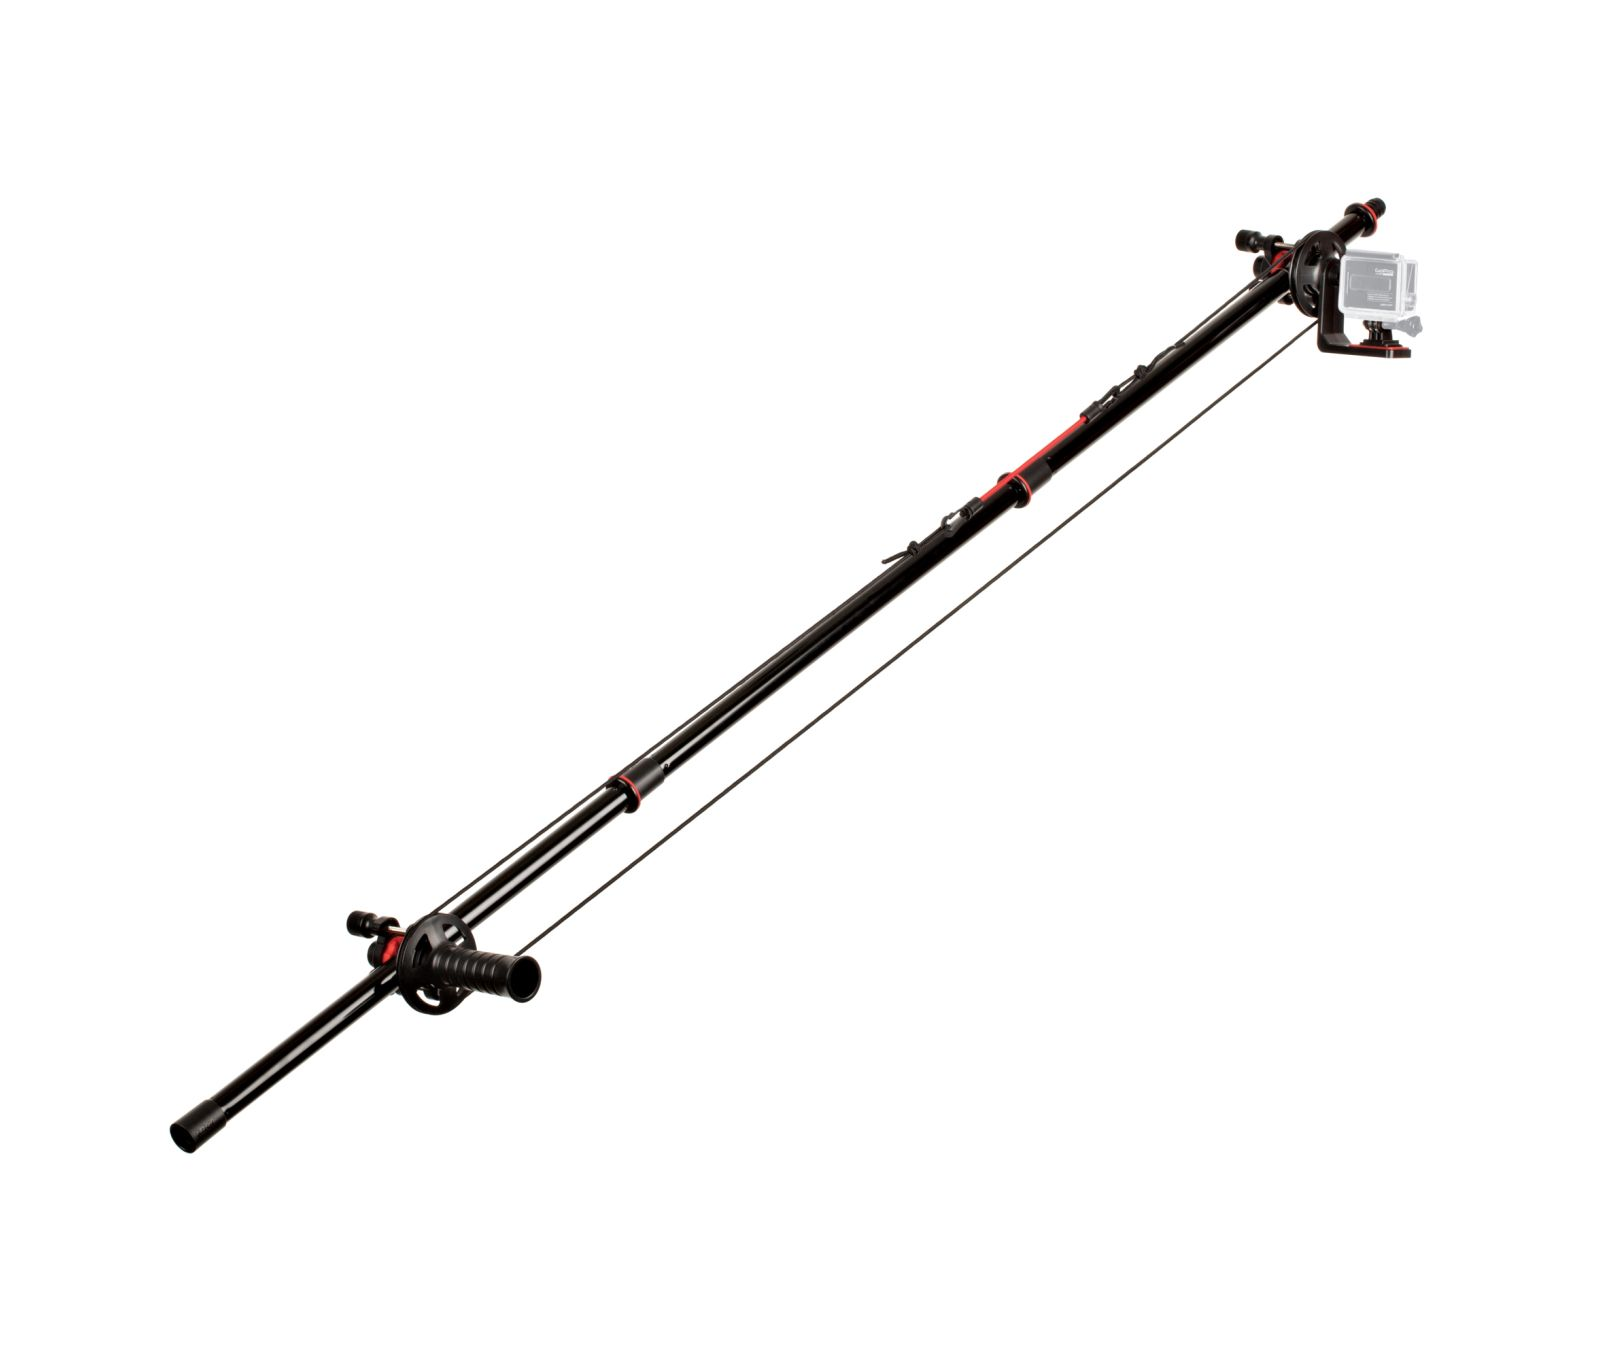 Action Jib Kit & Pole Negro/Rojo